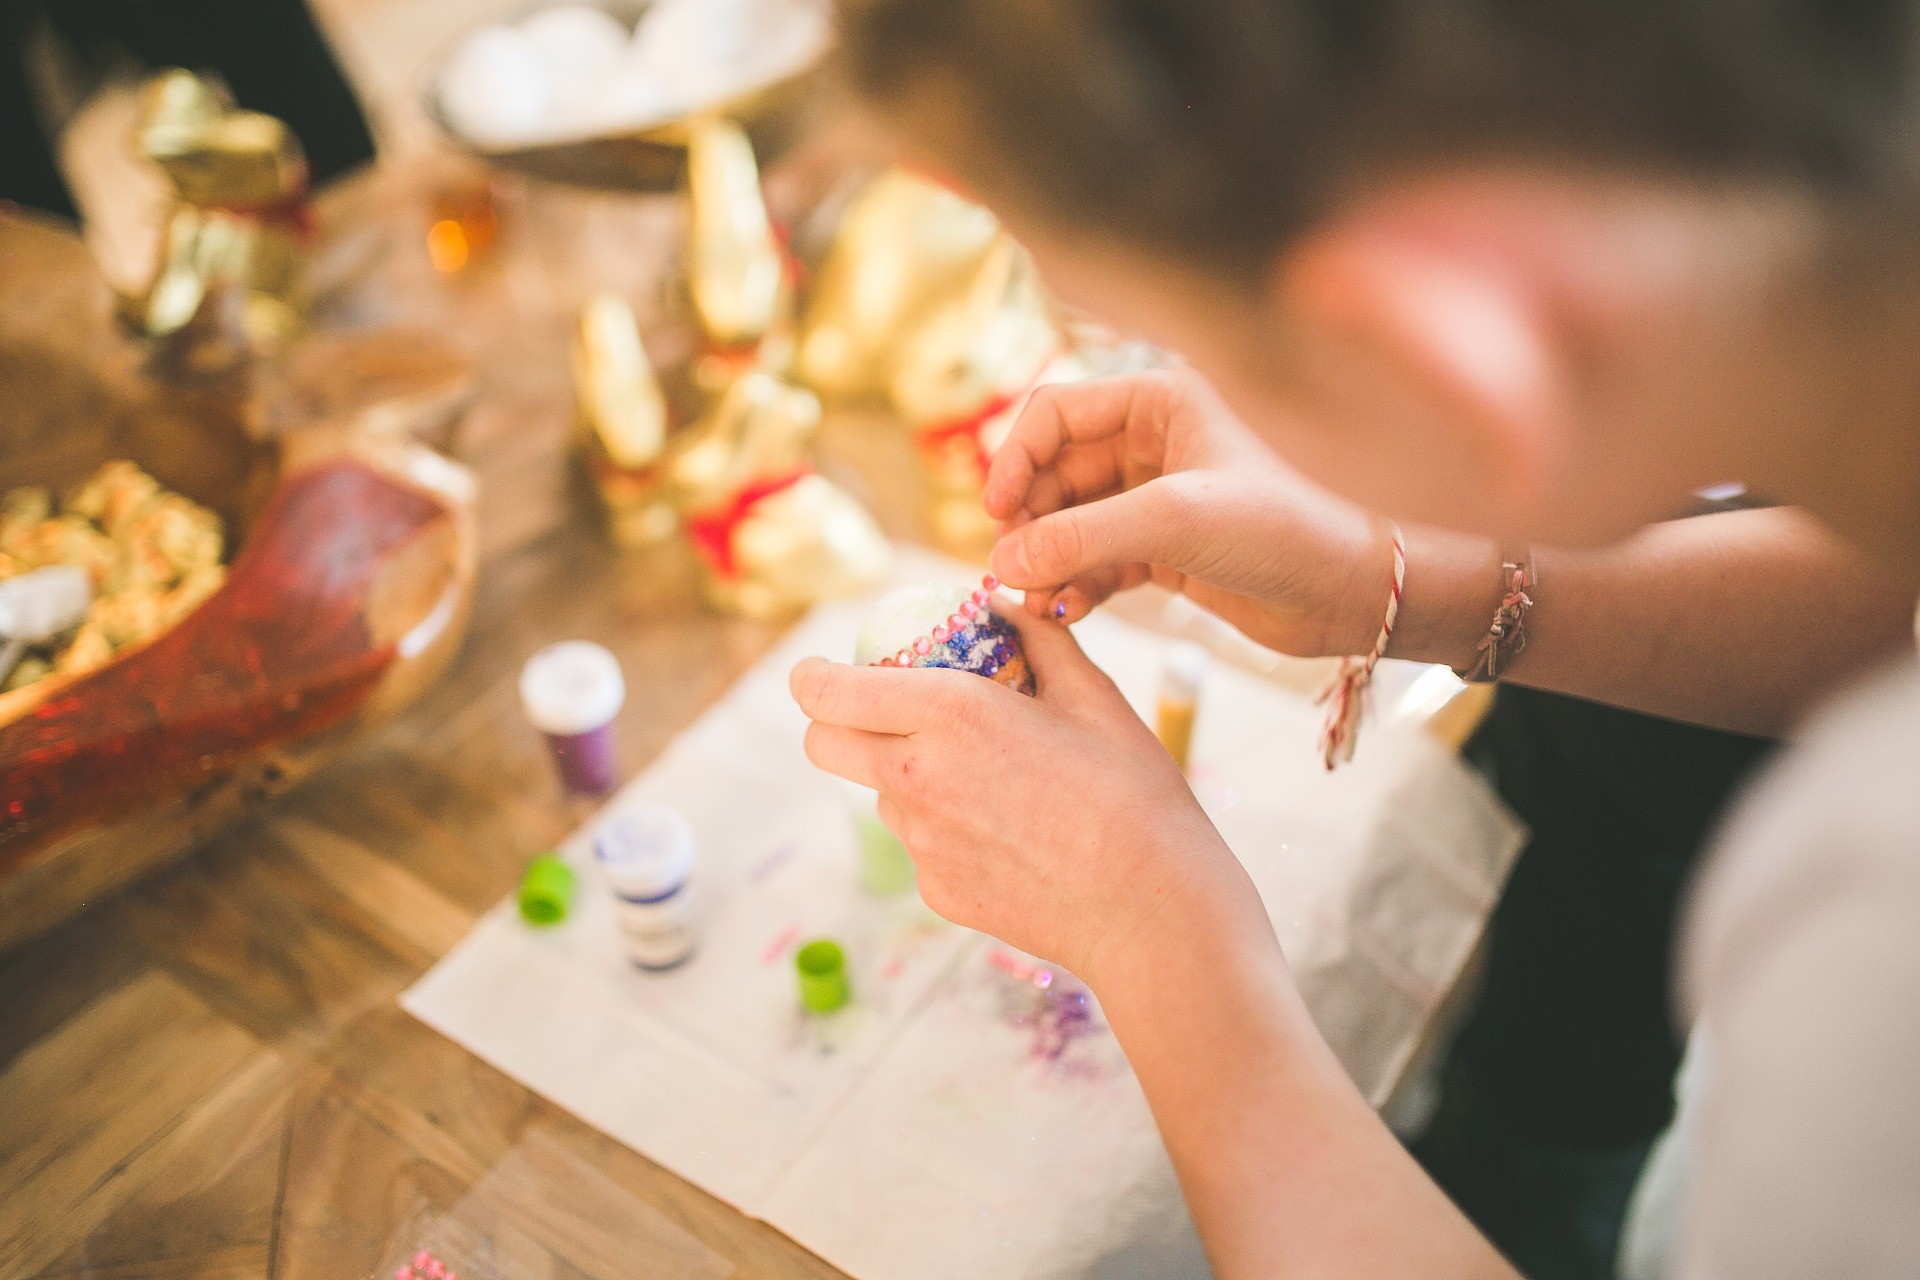 Getting stuck on Easter crafts…